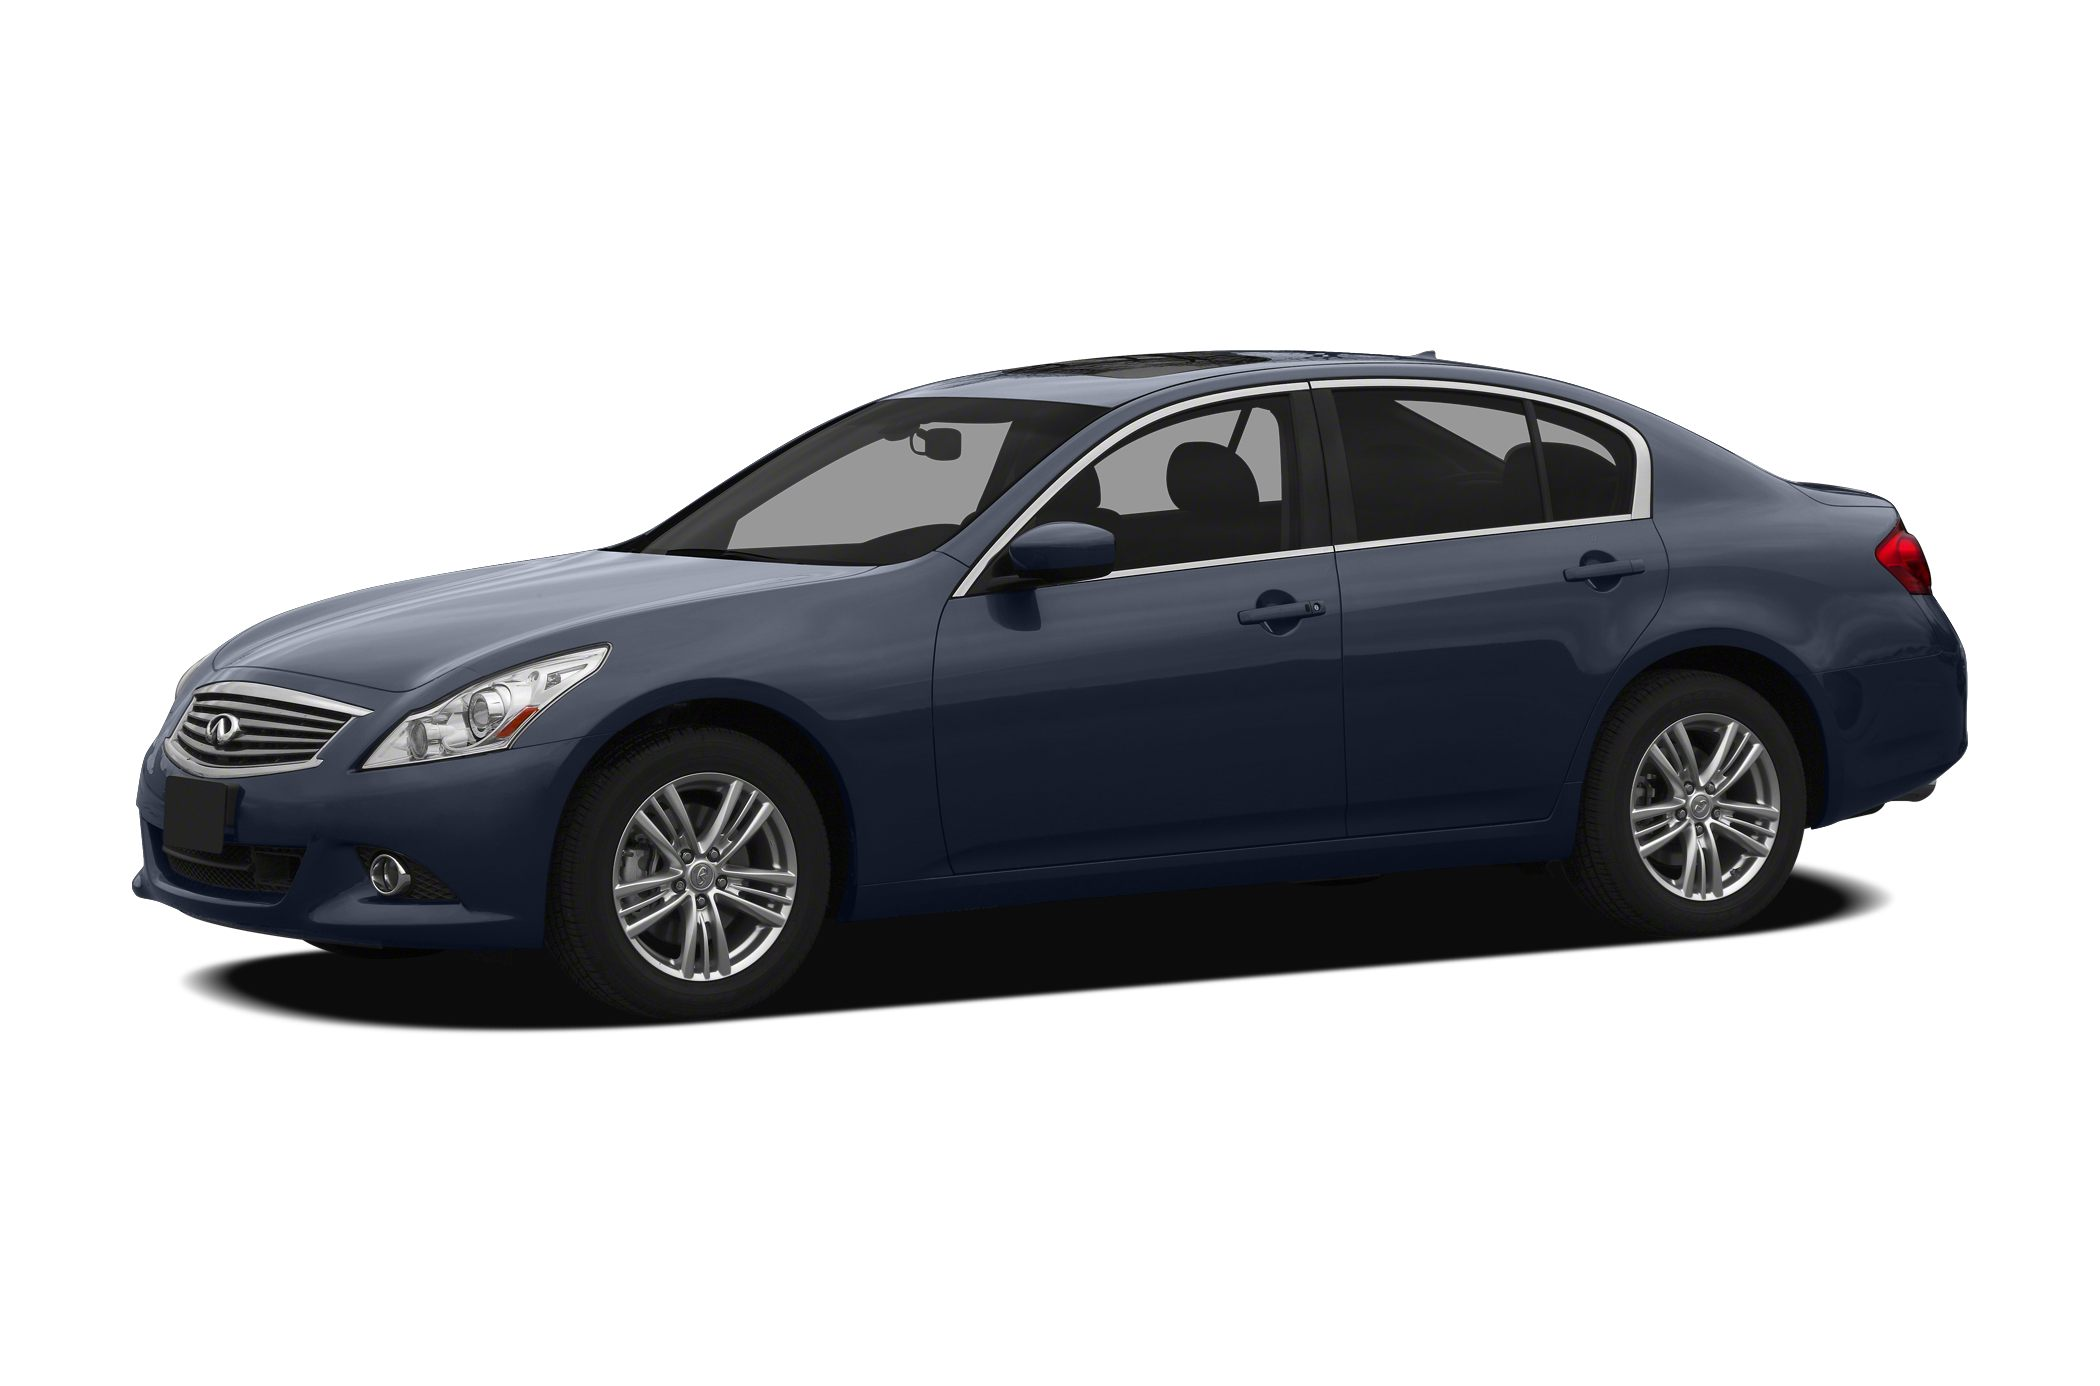 2012 Infiniti G37 Journey Sedan for sale in Lake Worth for $18,999 with 37,696 miles